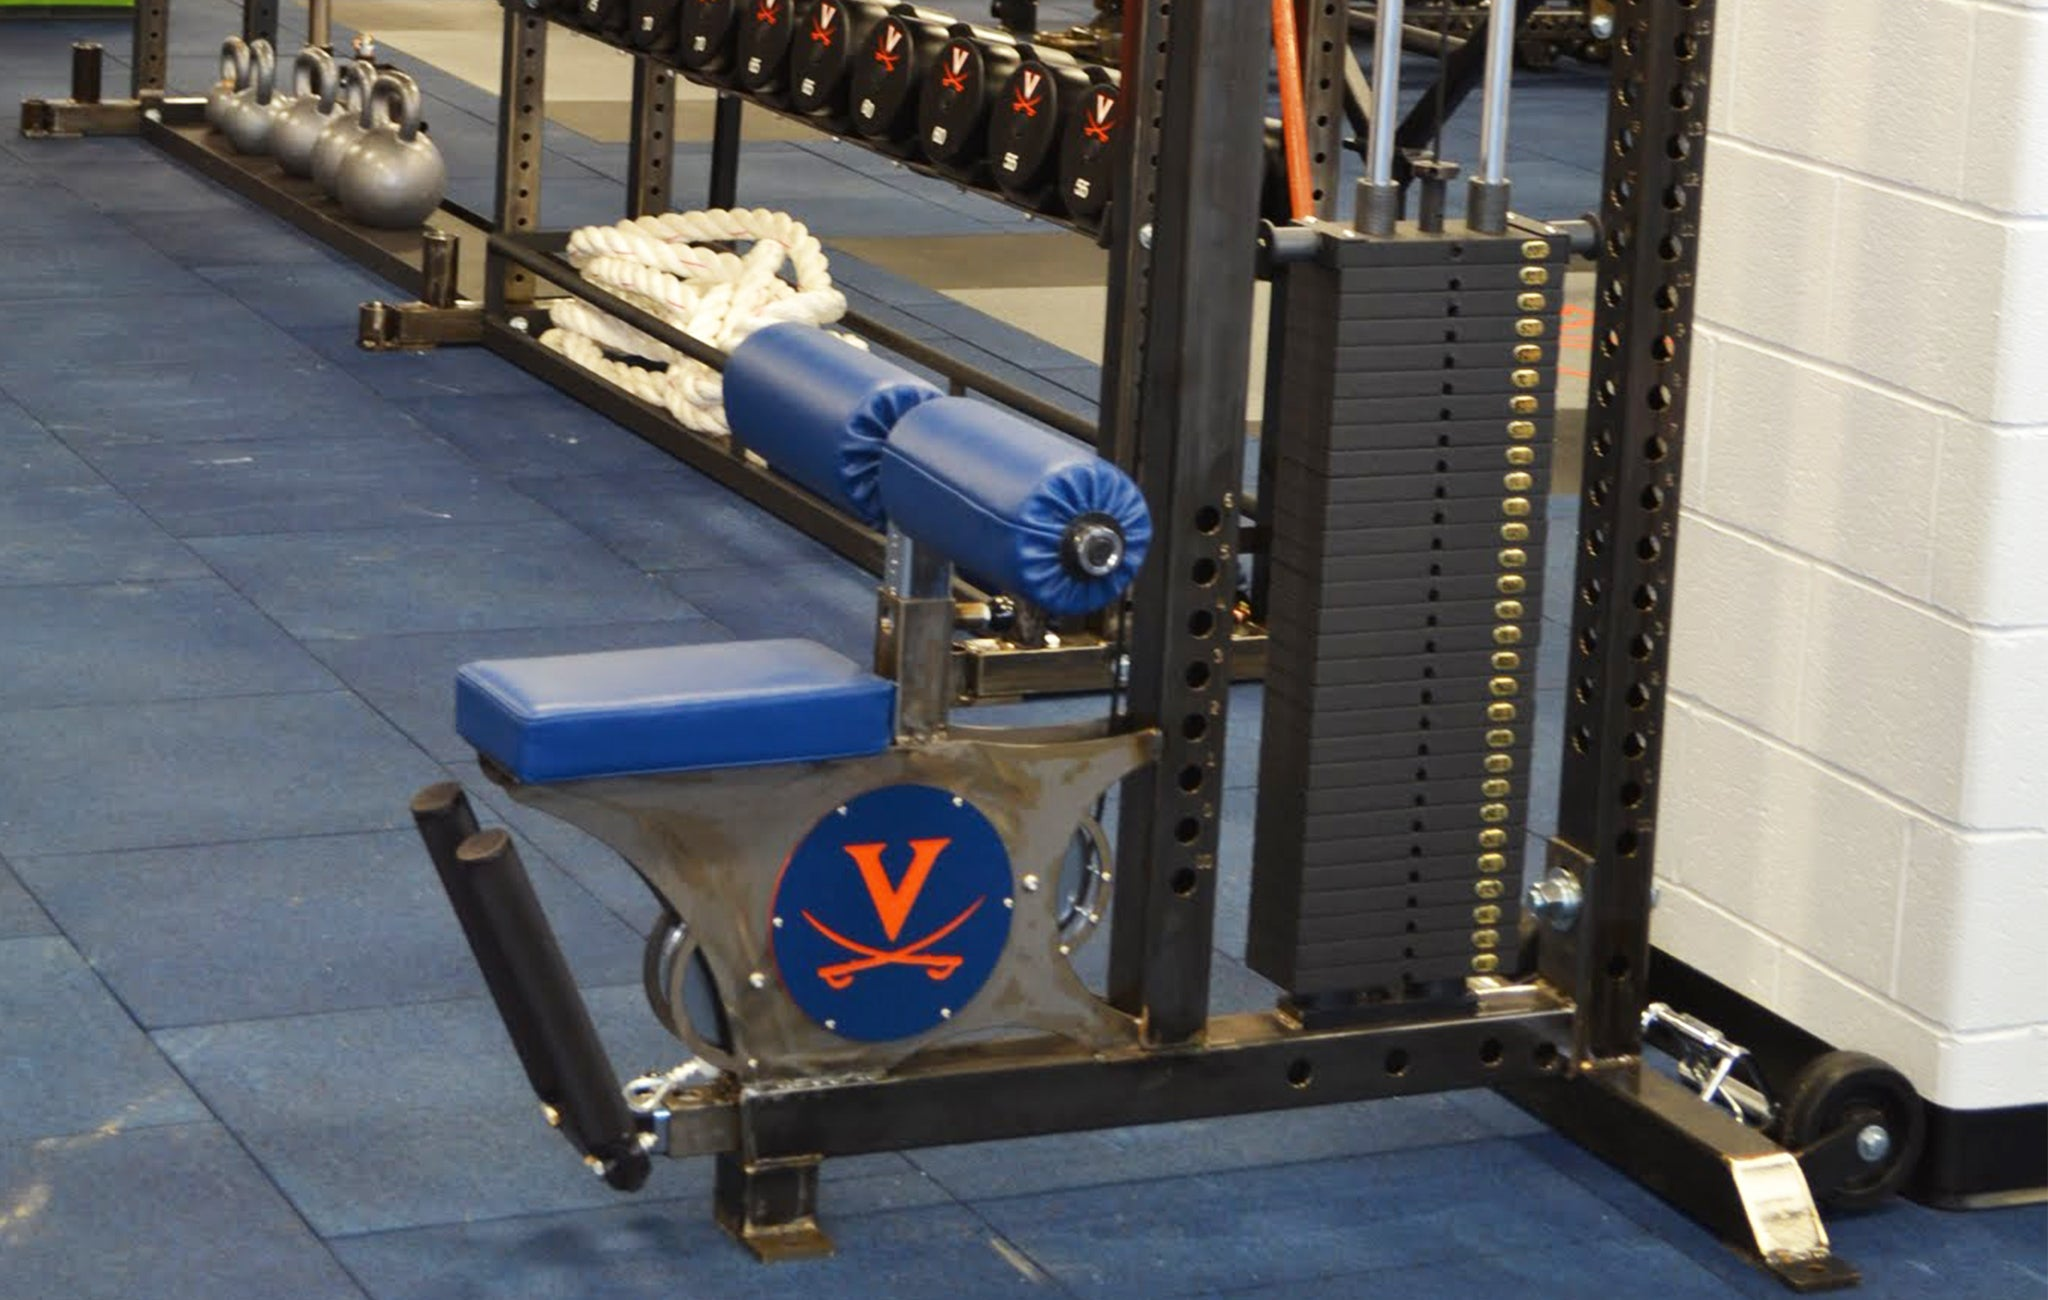 University of Virginia strength training facility